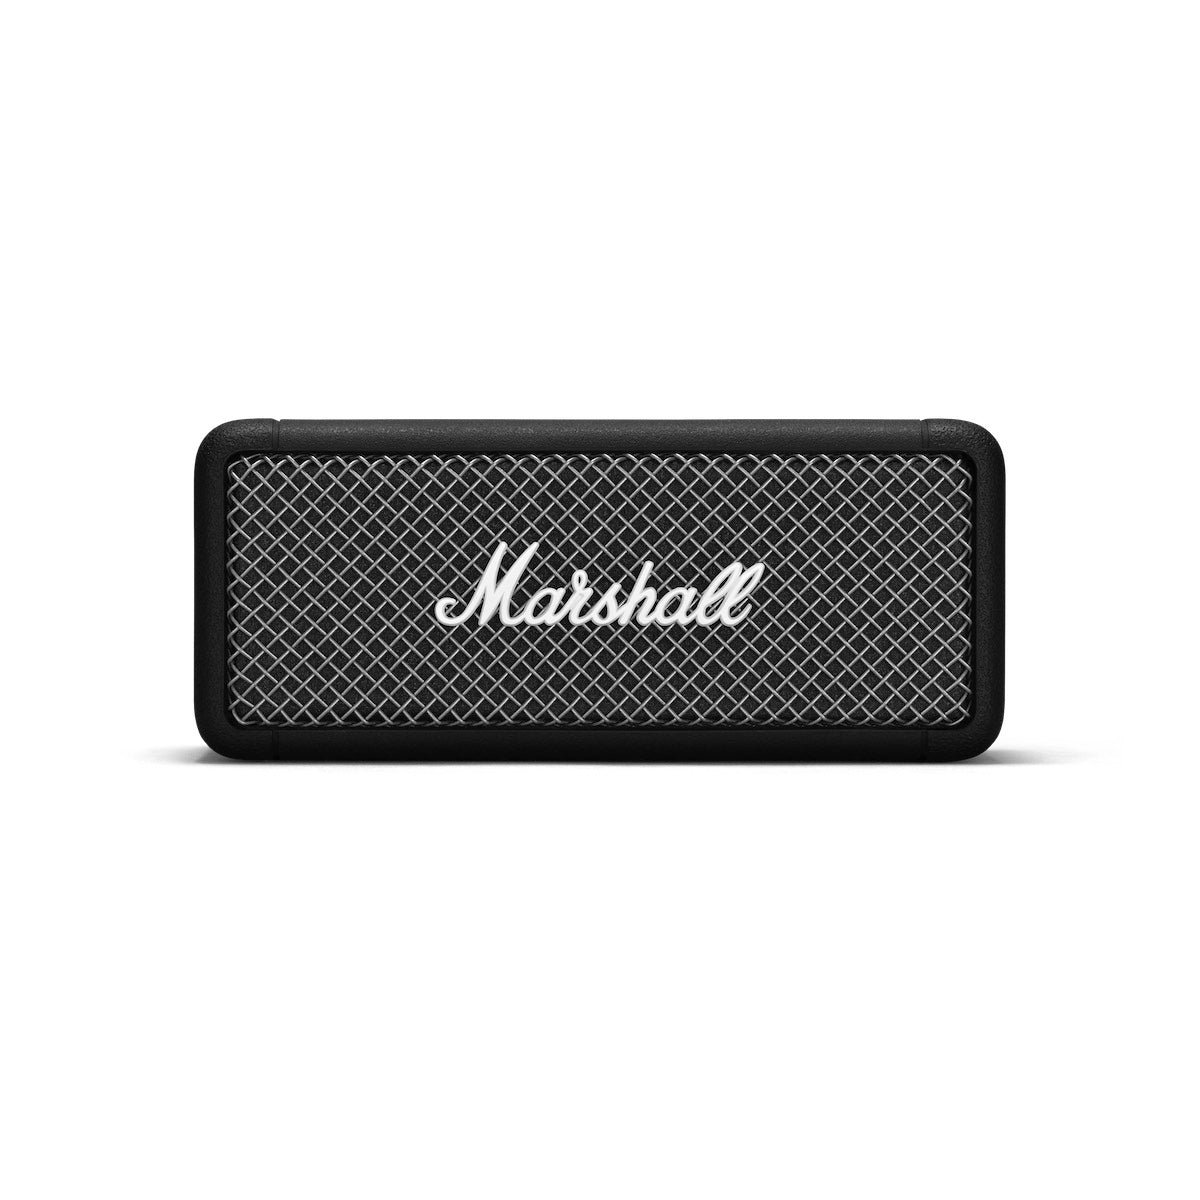 Marshall Emberton - Portable Bluetooth Speaker, Marshall,  - AVStore.in